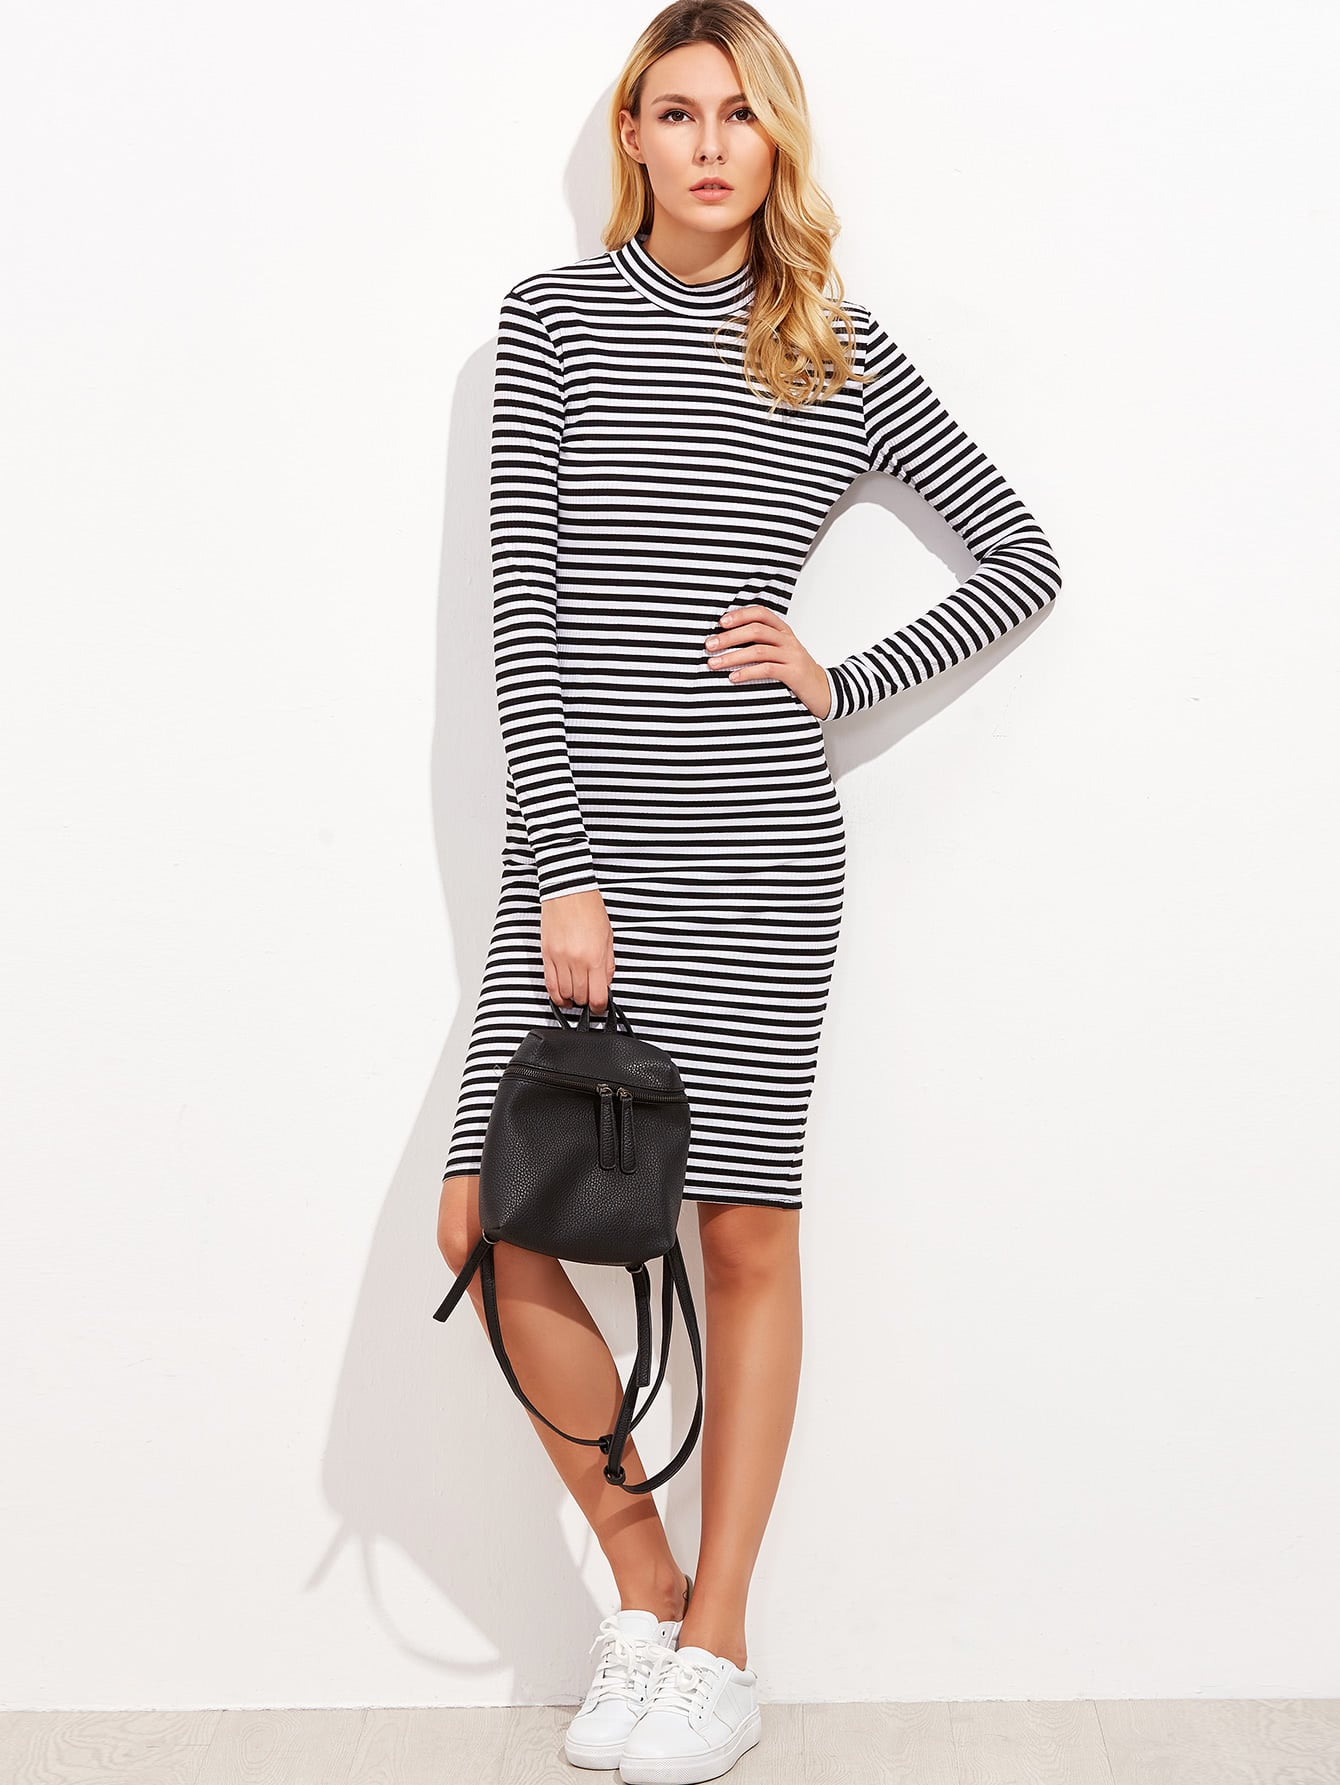 Black And White Striped Mock Neck Ribbed Dress dress161010401